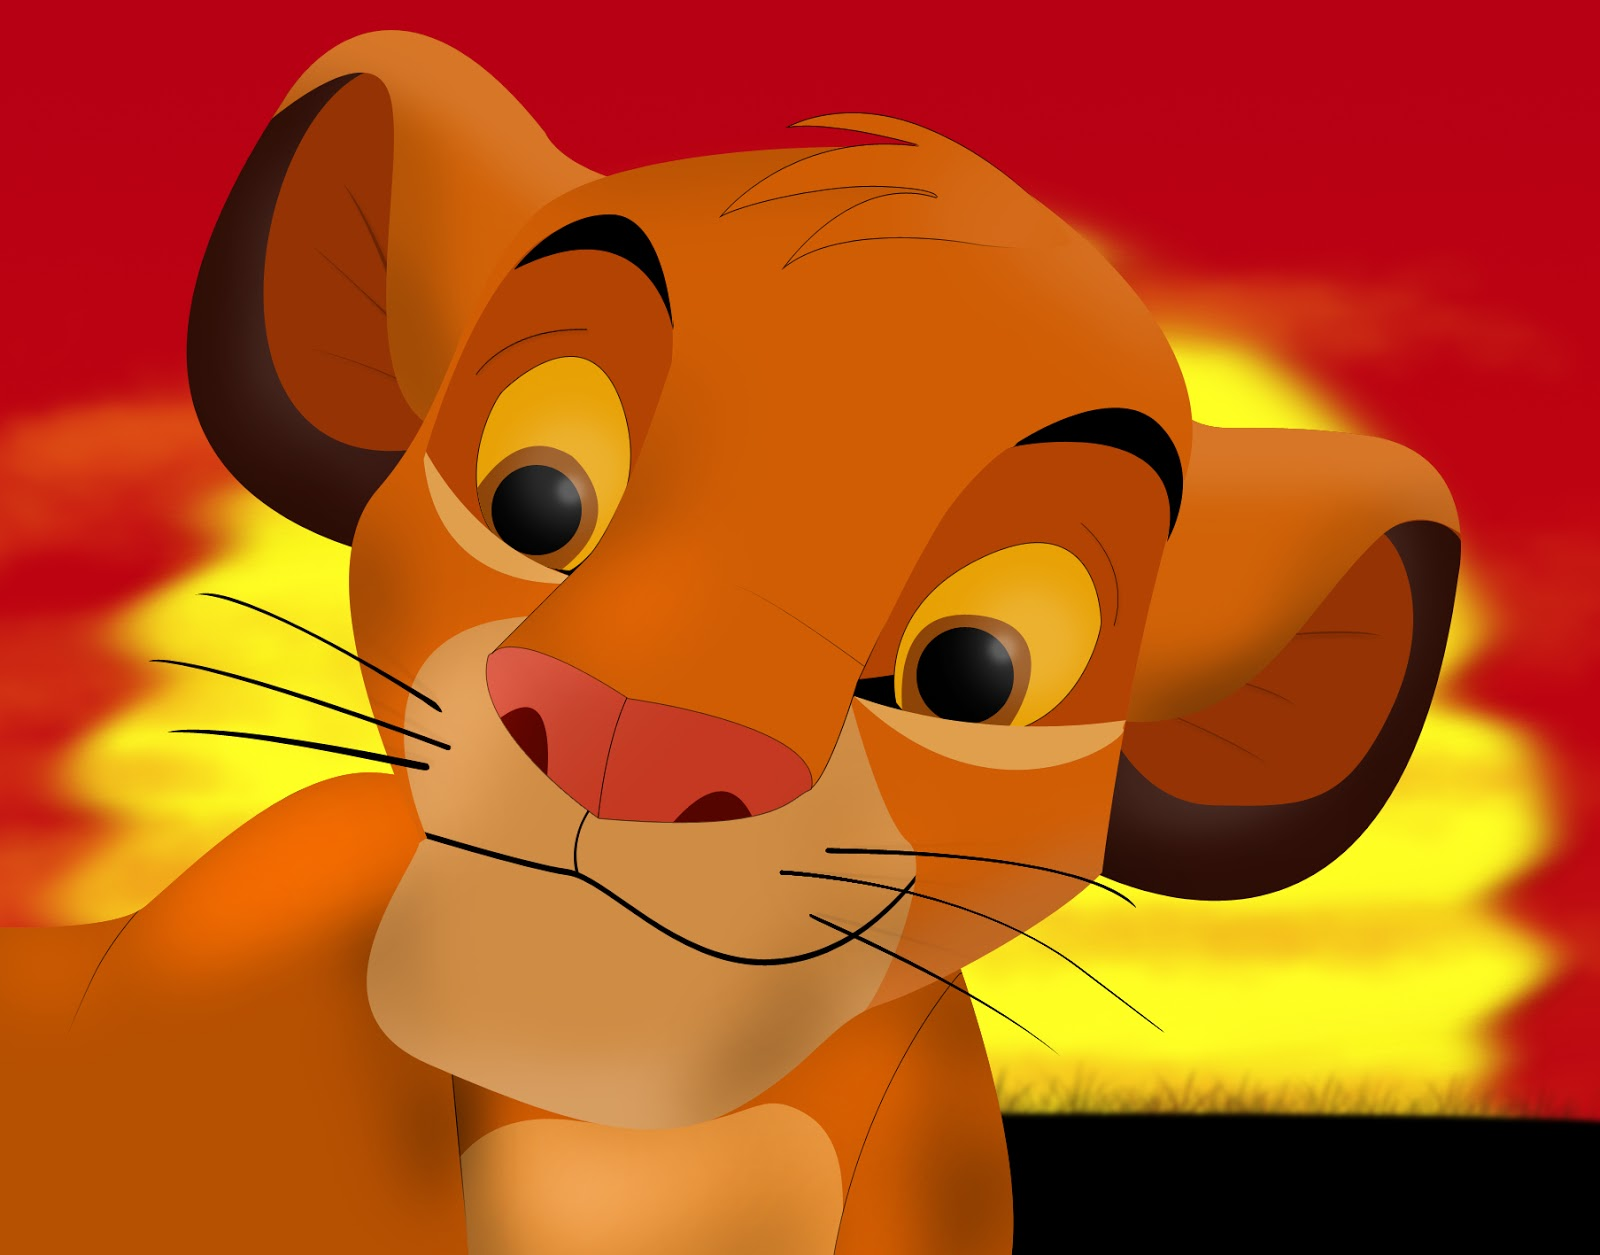 leadership style in the lion king The rapidly changing conditions in the workplace demand adaptive leadership styles, and the success of an organization relies on leaders evaluating and applying effective leadership styles before workplace failures occur the disney's animated movie the lion king portrays a combination of leadership.